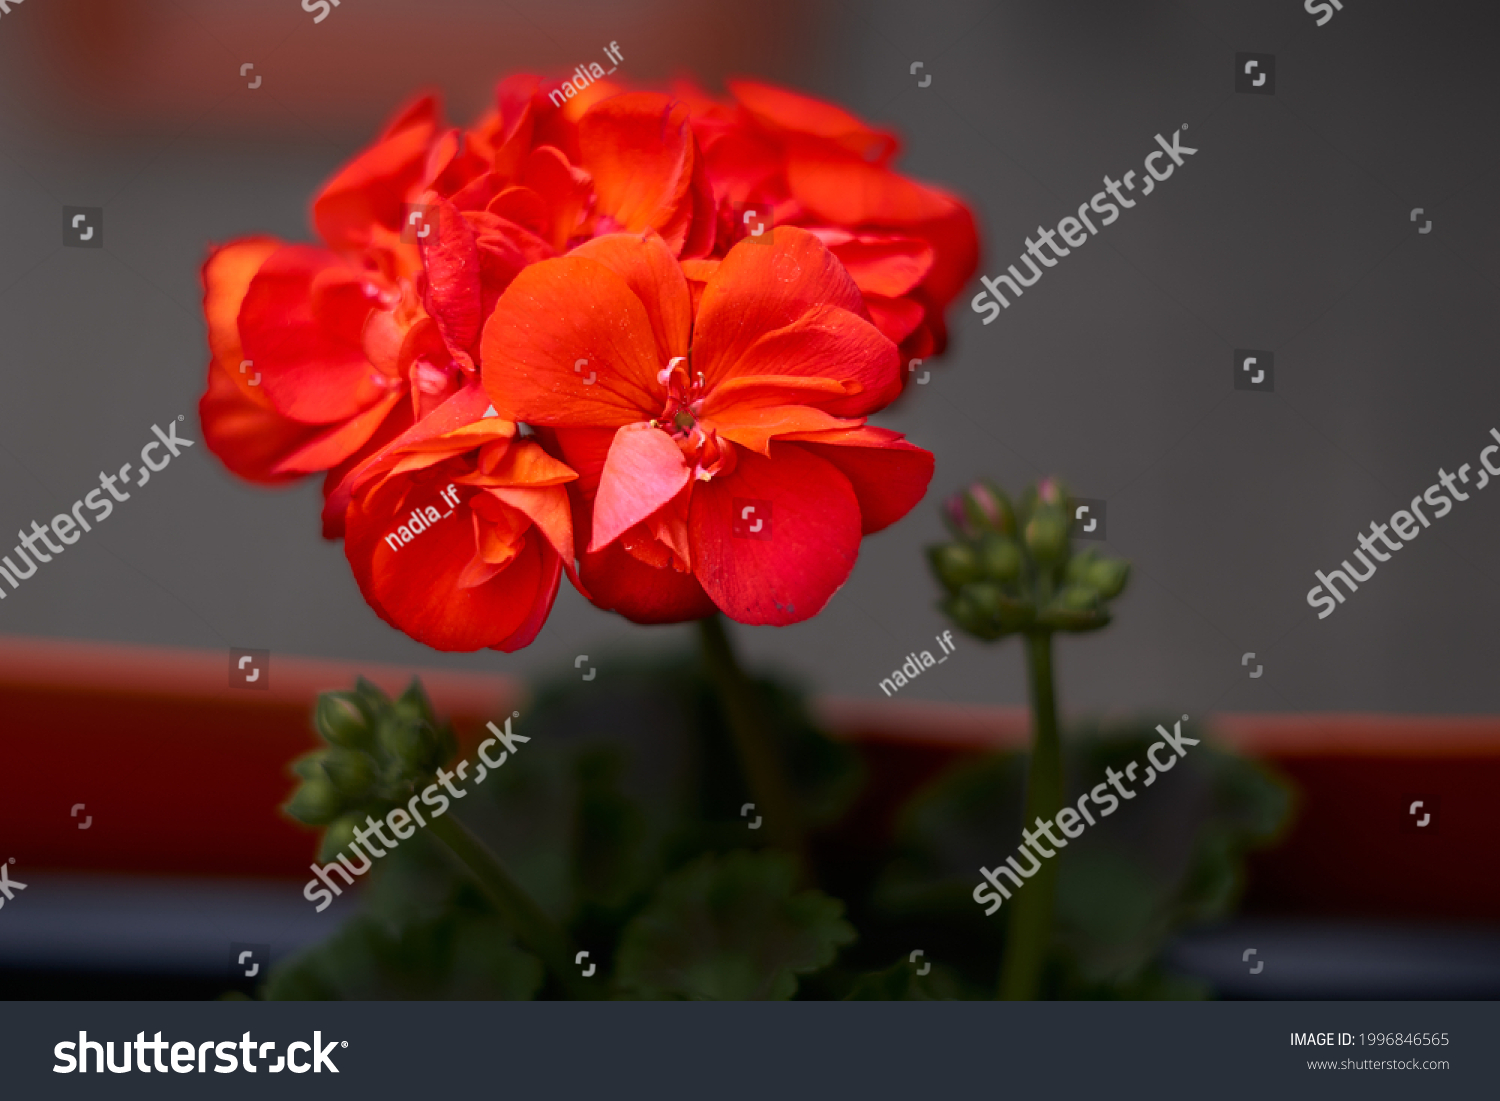 Beautiful blooming red pelargonium in the open yard. These flowers are the decoration of the garden. High quality photo #1996846565